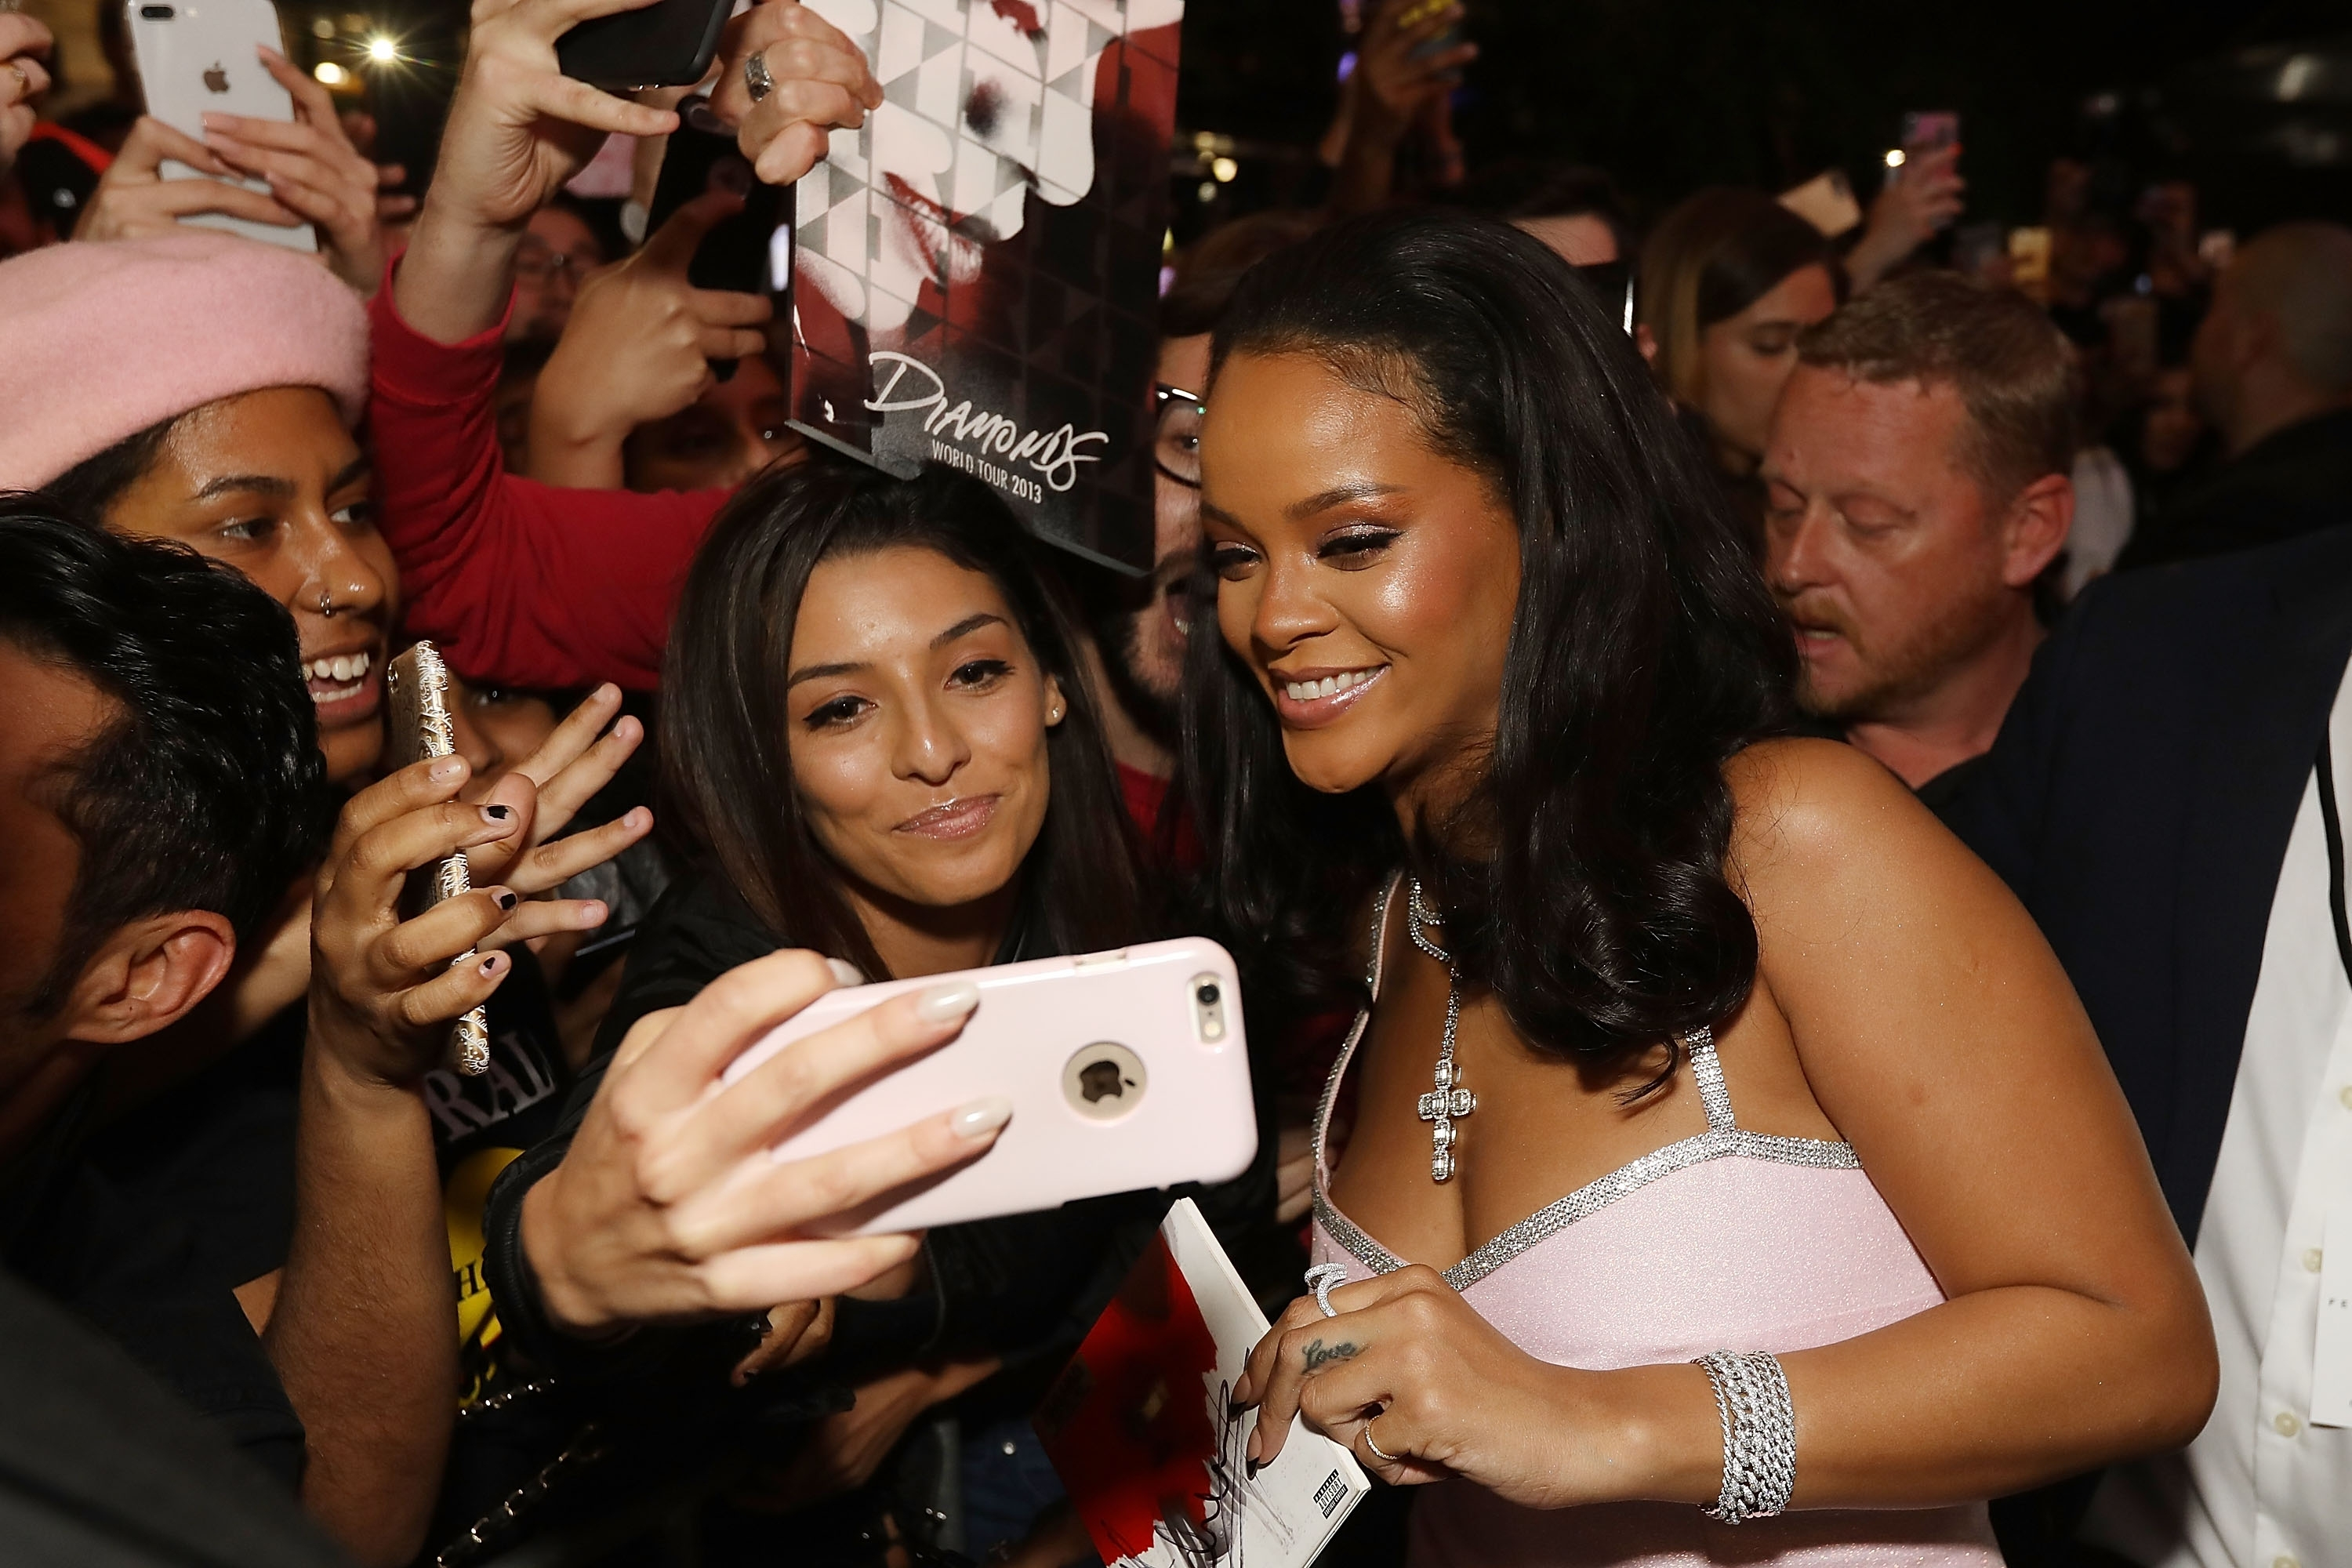 Rihanna Declined 2019 Super Bowl Halftime Show For Colin within Rihanna Super Bowl 2019